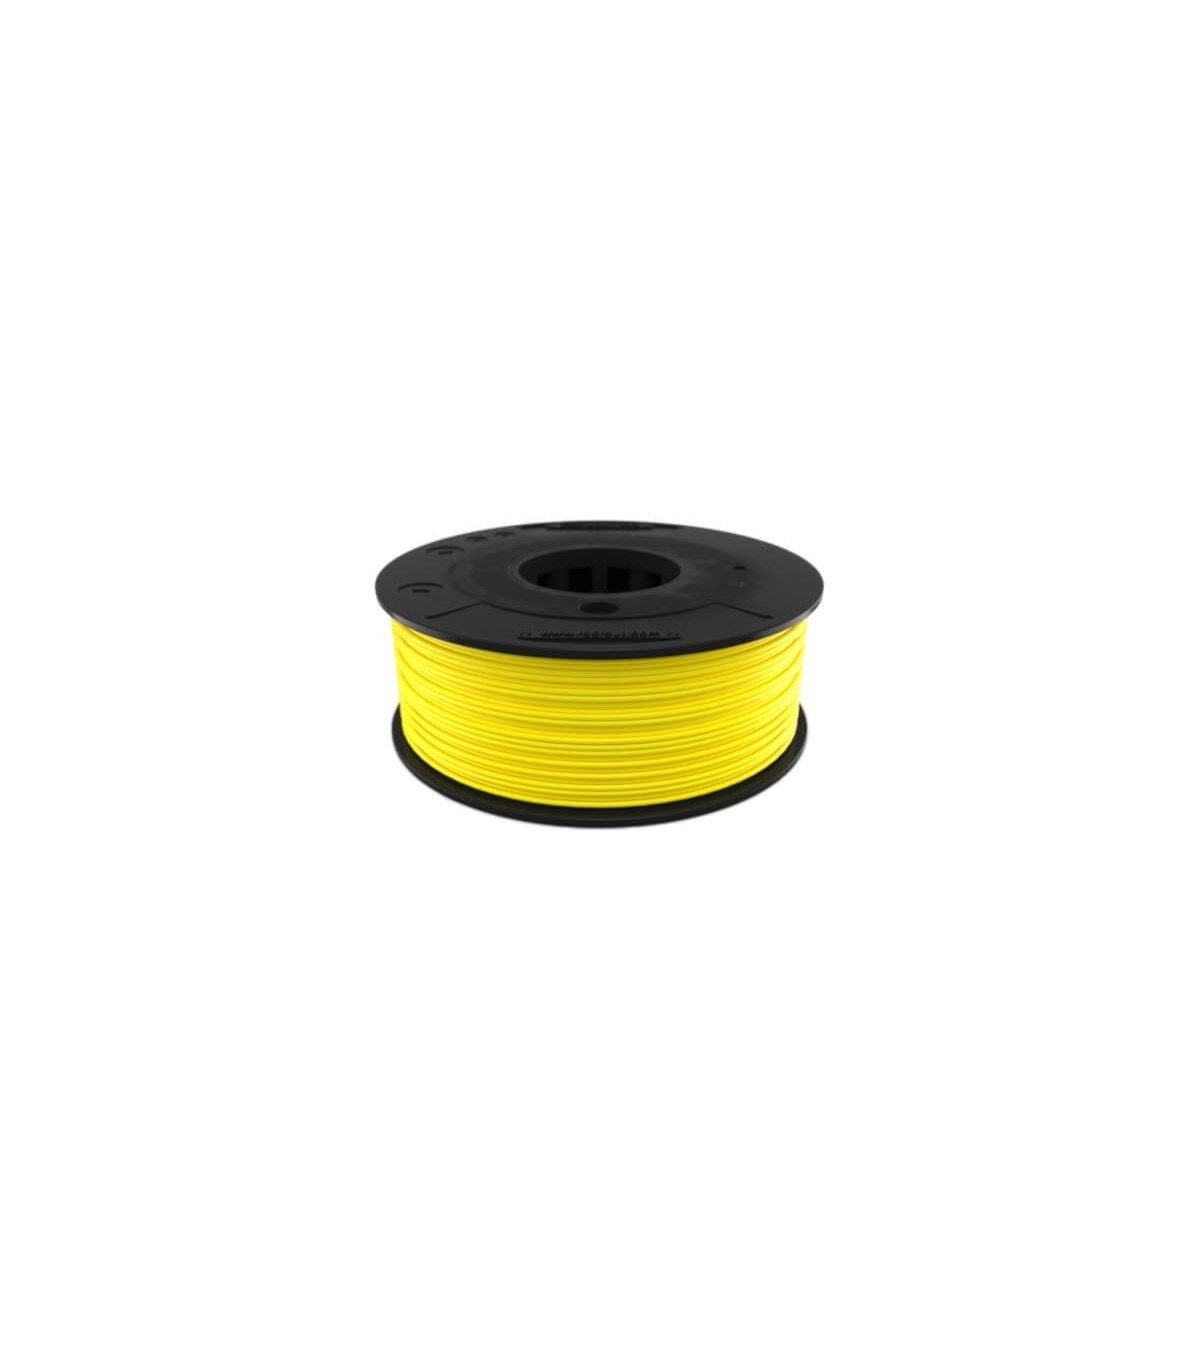 FilaFlex Yellow 82A TPE Filament 1.75 mm 250g